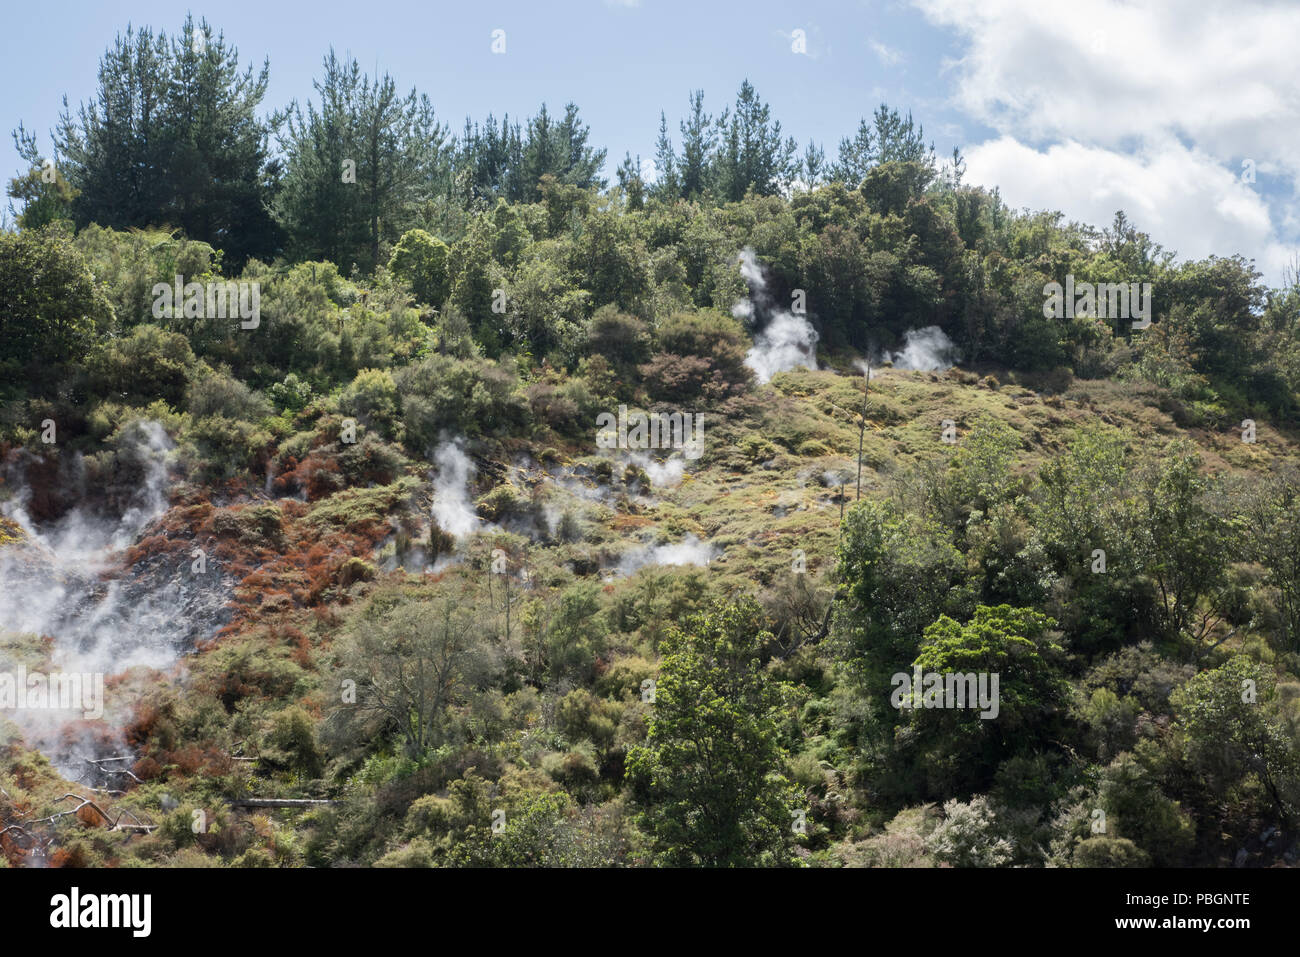 Steaming fumaroles in the lush forest at Orakei Korako geothermal area in Rotorua, New Zealand - Stock Image